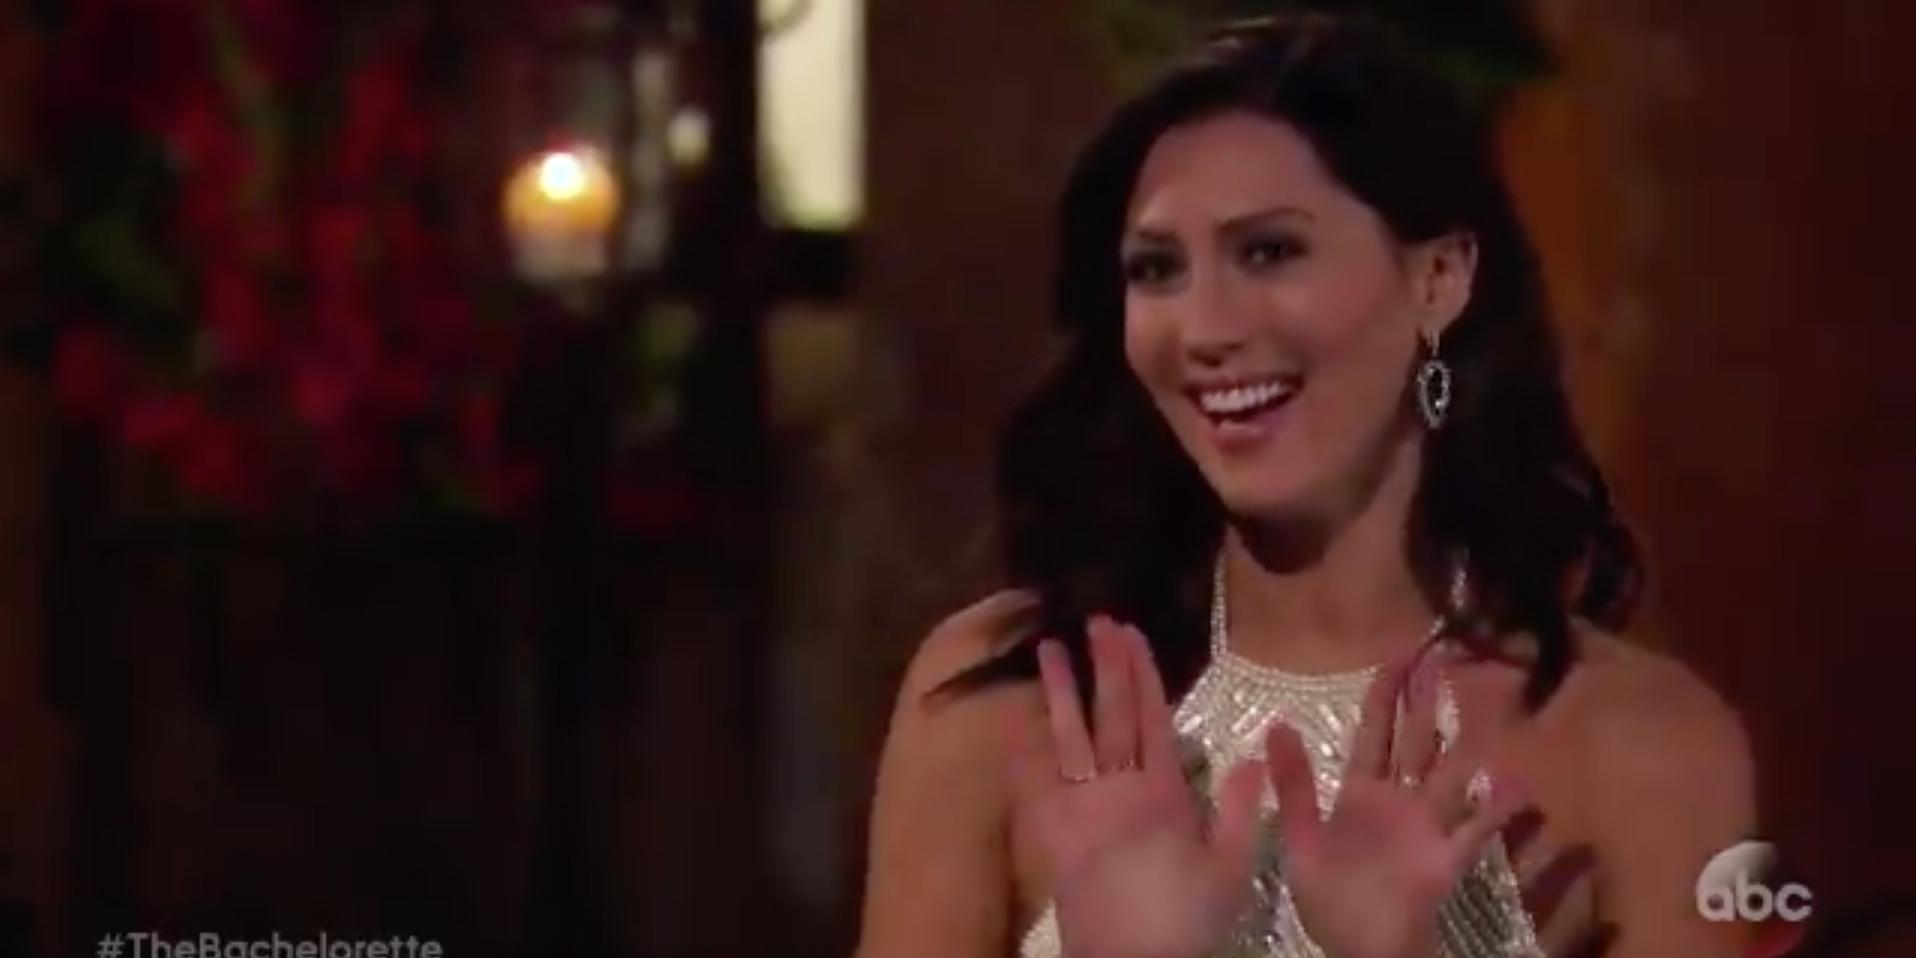 Bachelorette first look becca kufrin contestants hero